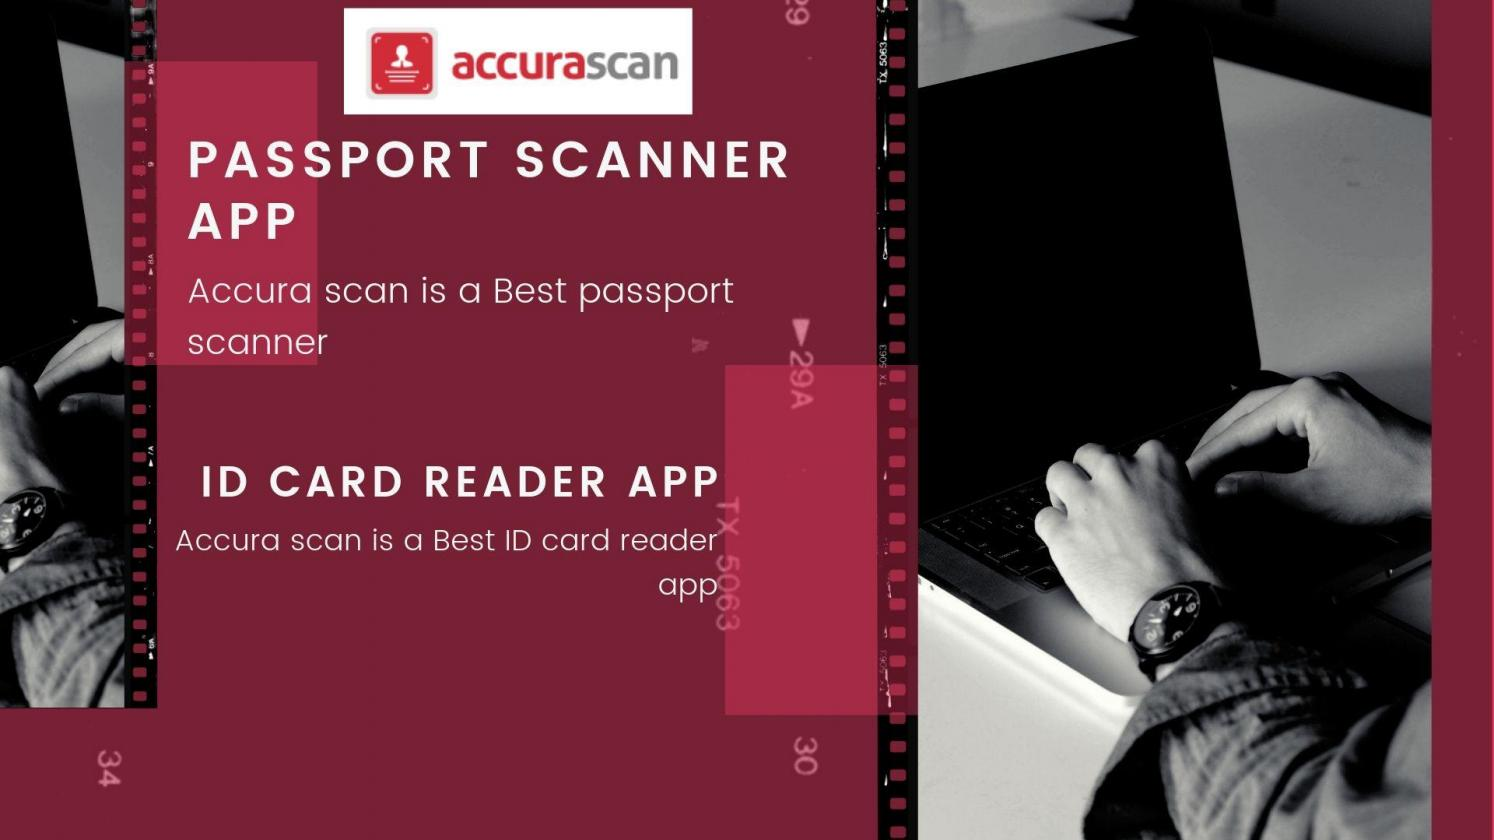 The quick and efficient ID scanner app - Accura Scan by